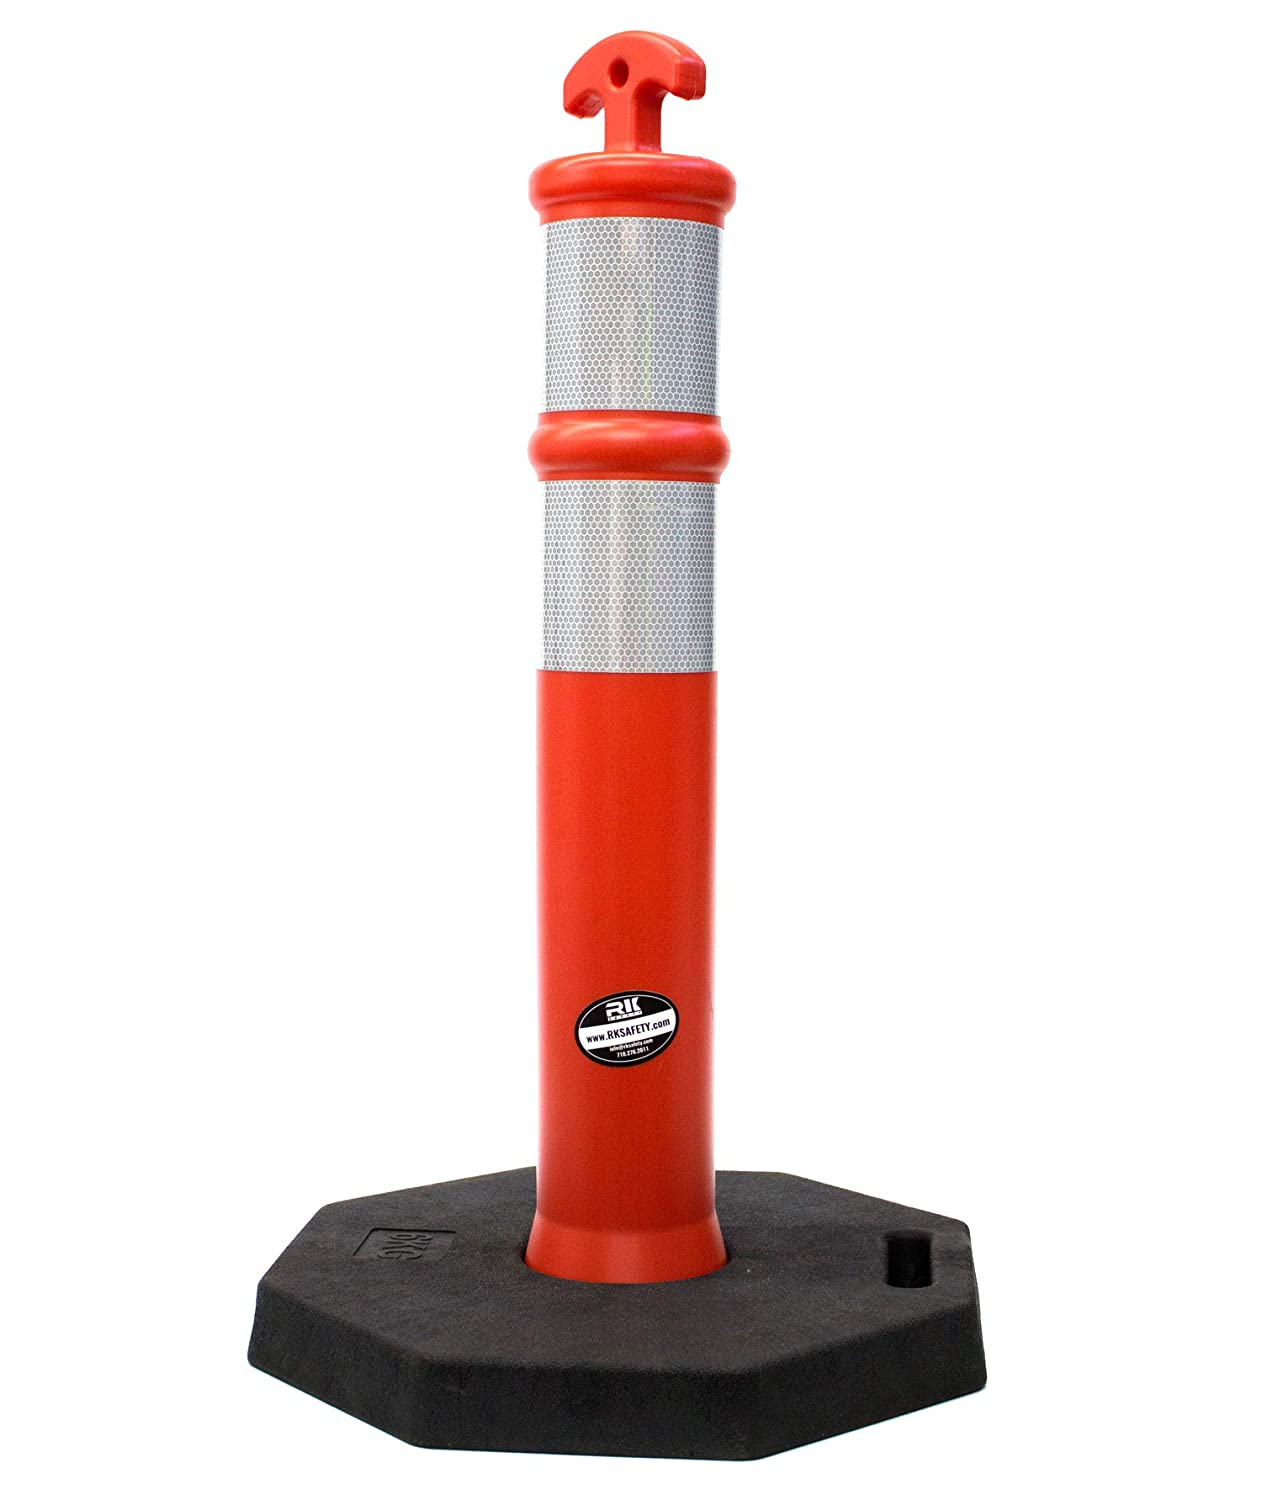 28 Height Pack of 10, Orange RK DPOST2T Polyethylene Portable Delineator Small Post with 13 lbs Recycled Octagonal Rubber Base